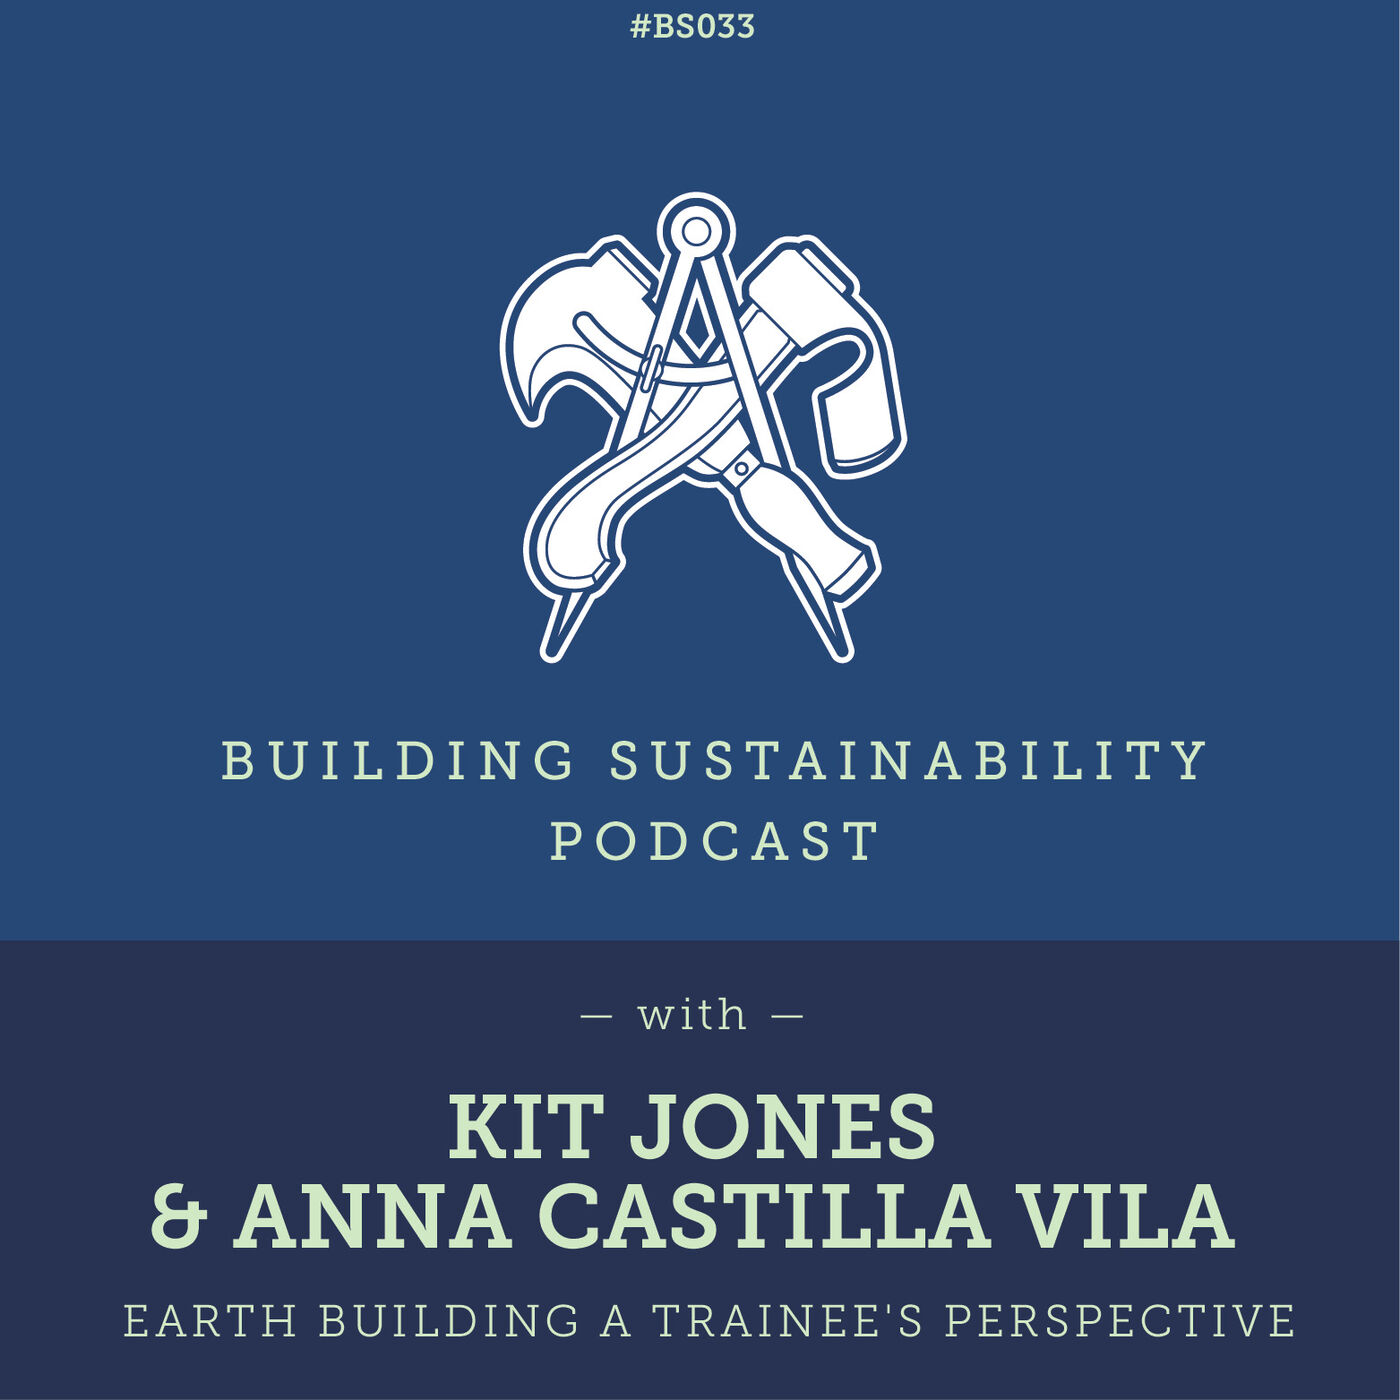 Earth Building a trainee's perspective - Kit Jones & Anna Castilla Vila - Pt1 - BS033